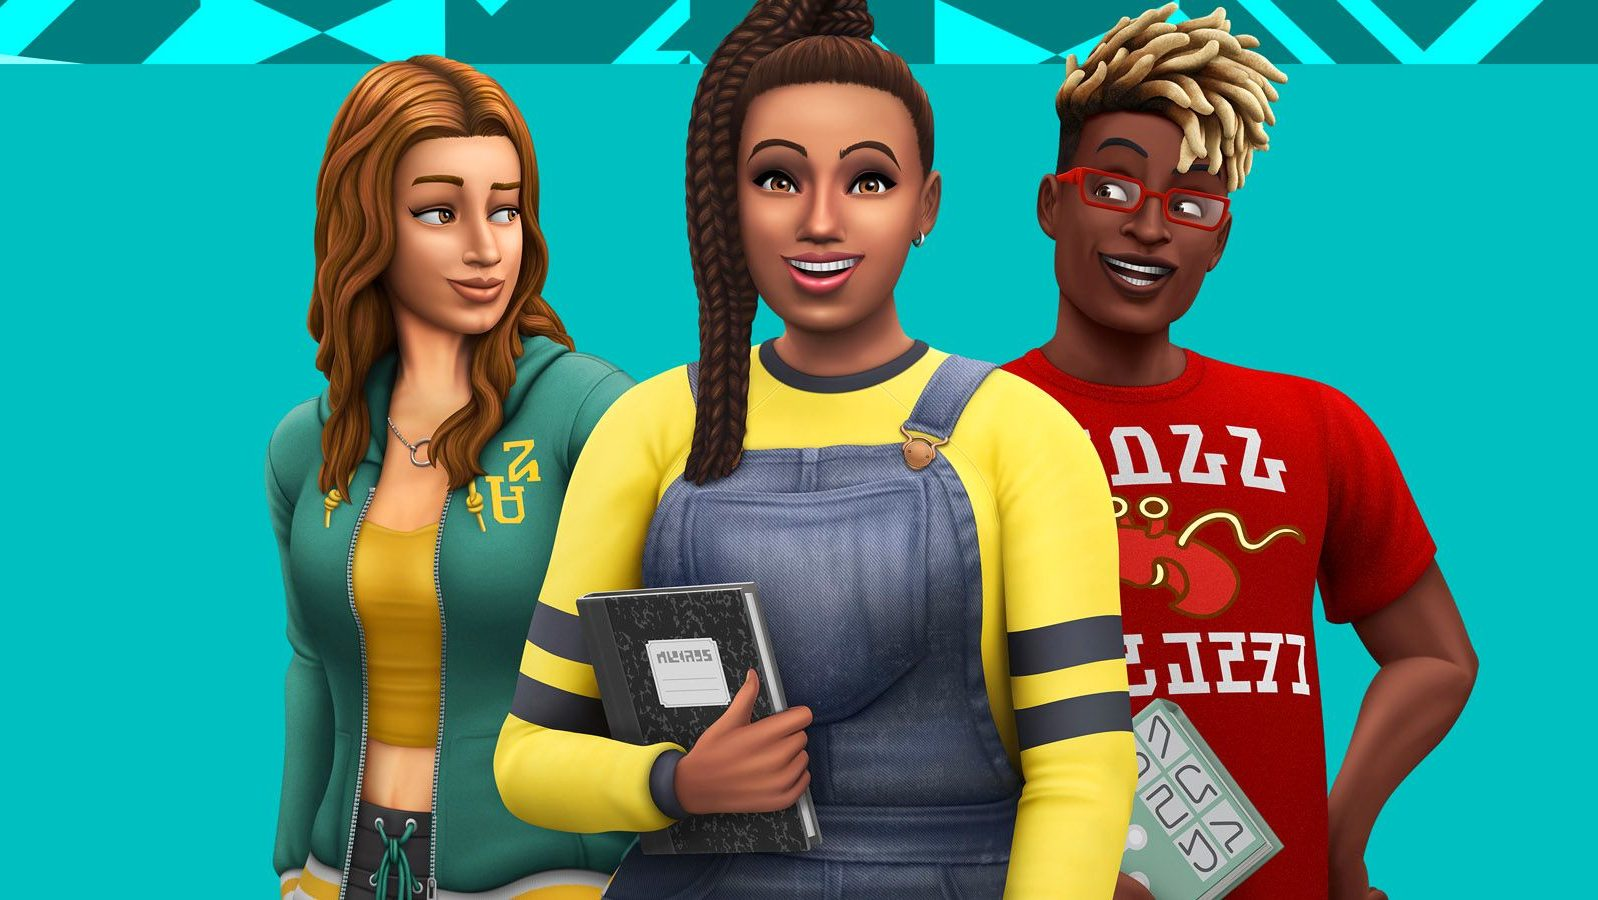 The Sims 5 Release Date Update from EA and Maxis